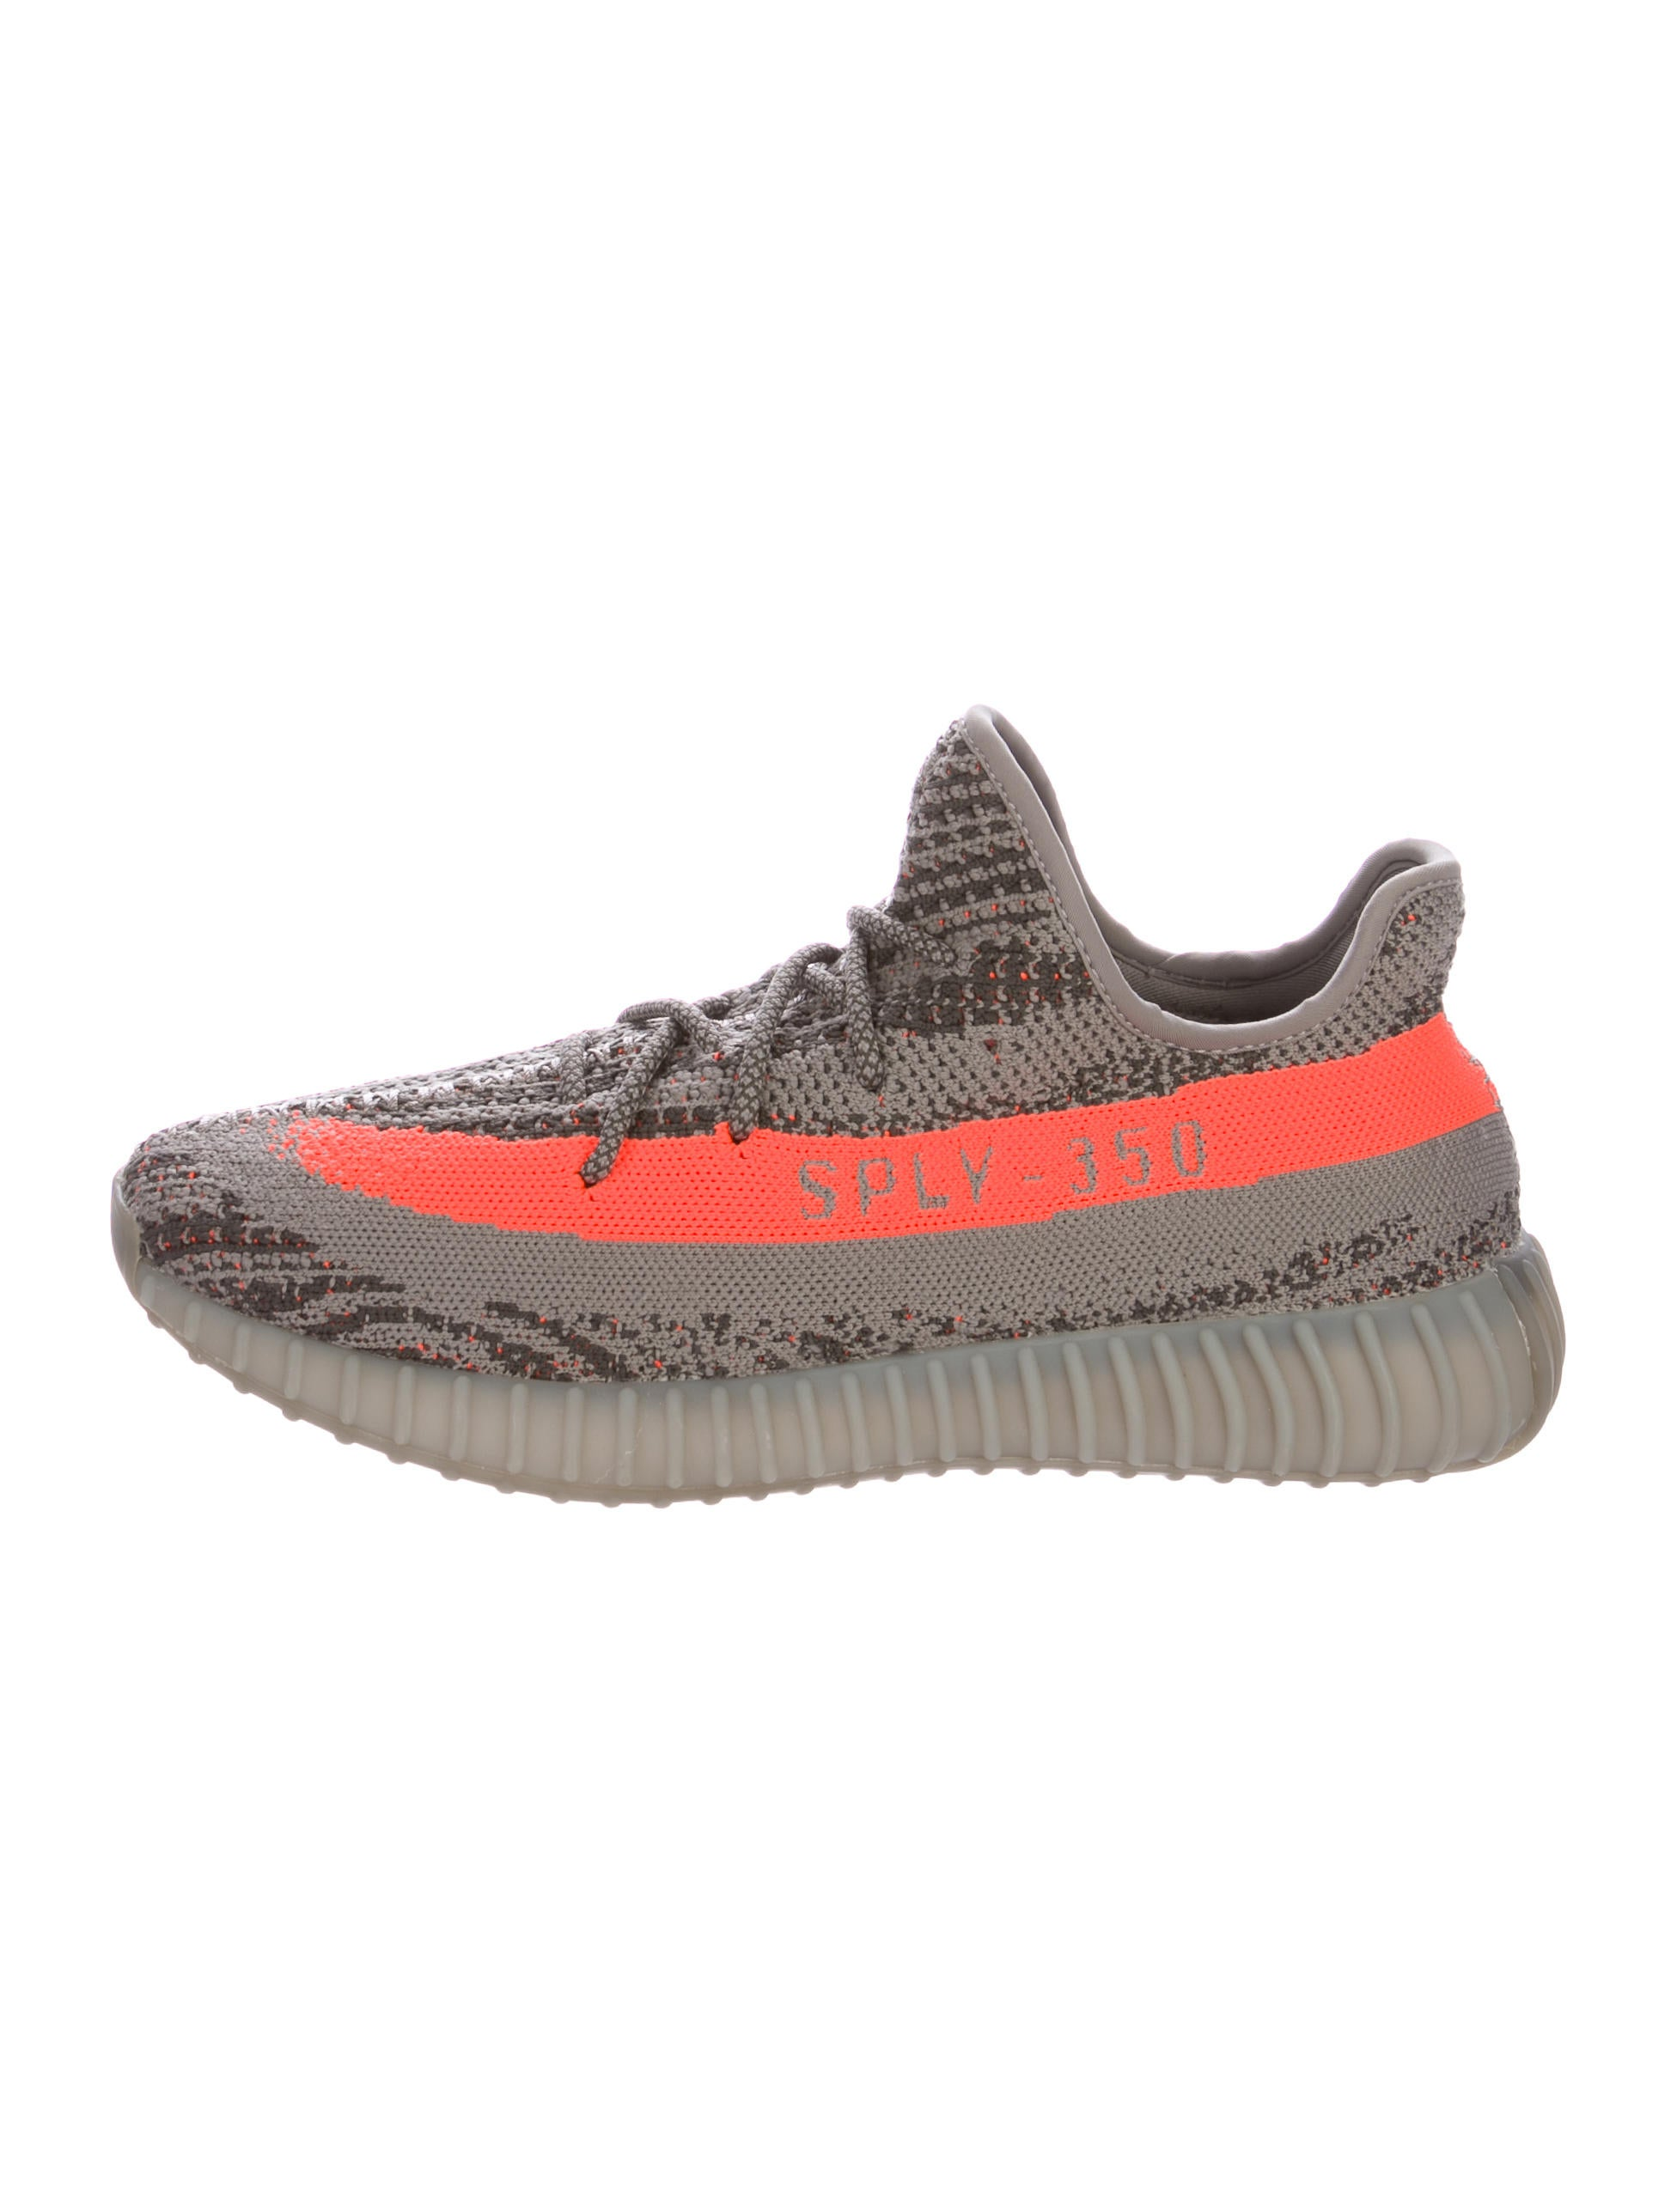 Yeezy X Adidas 350 V2 Boost Sneakers Shoes Wyead20161